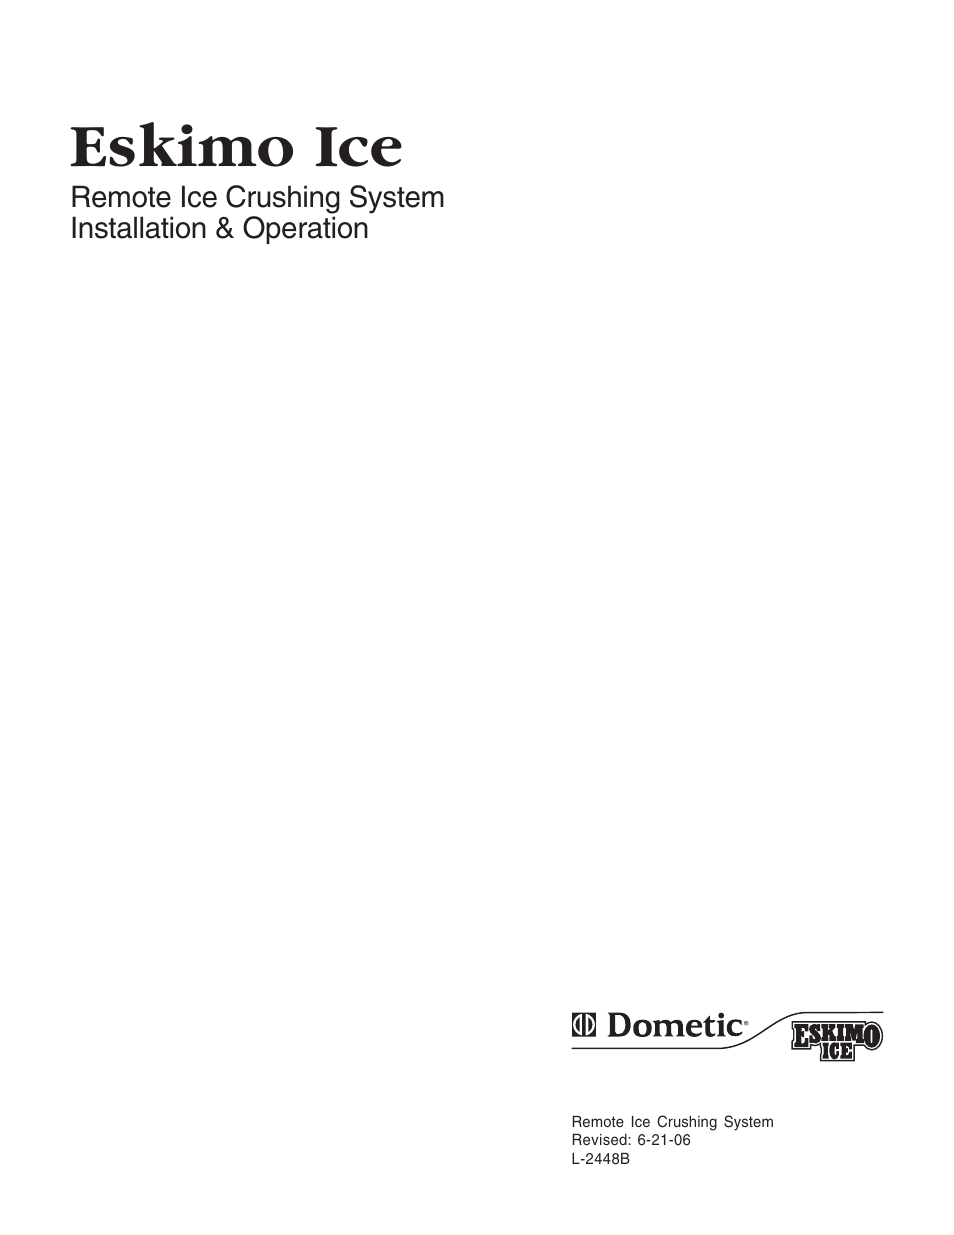 Dometic Eskimo Ice Remote Ice Crushing System User Manual